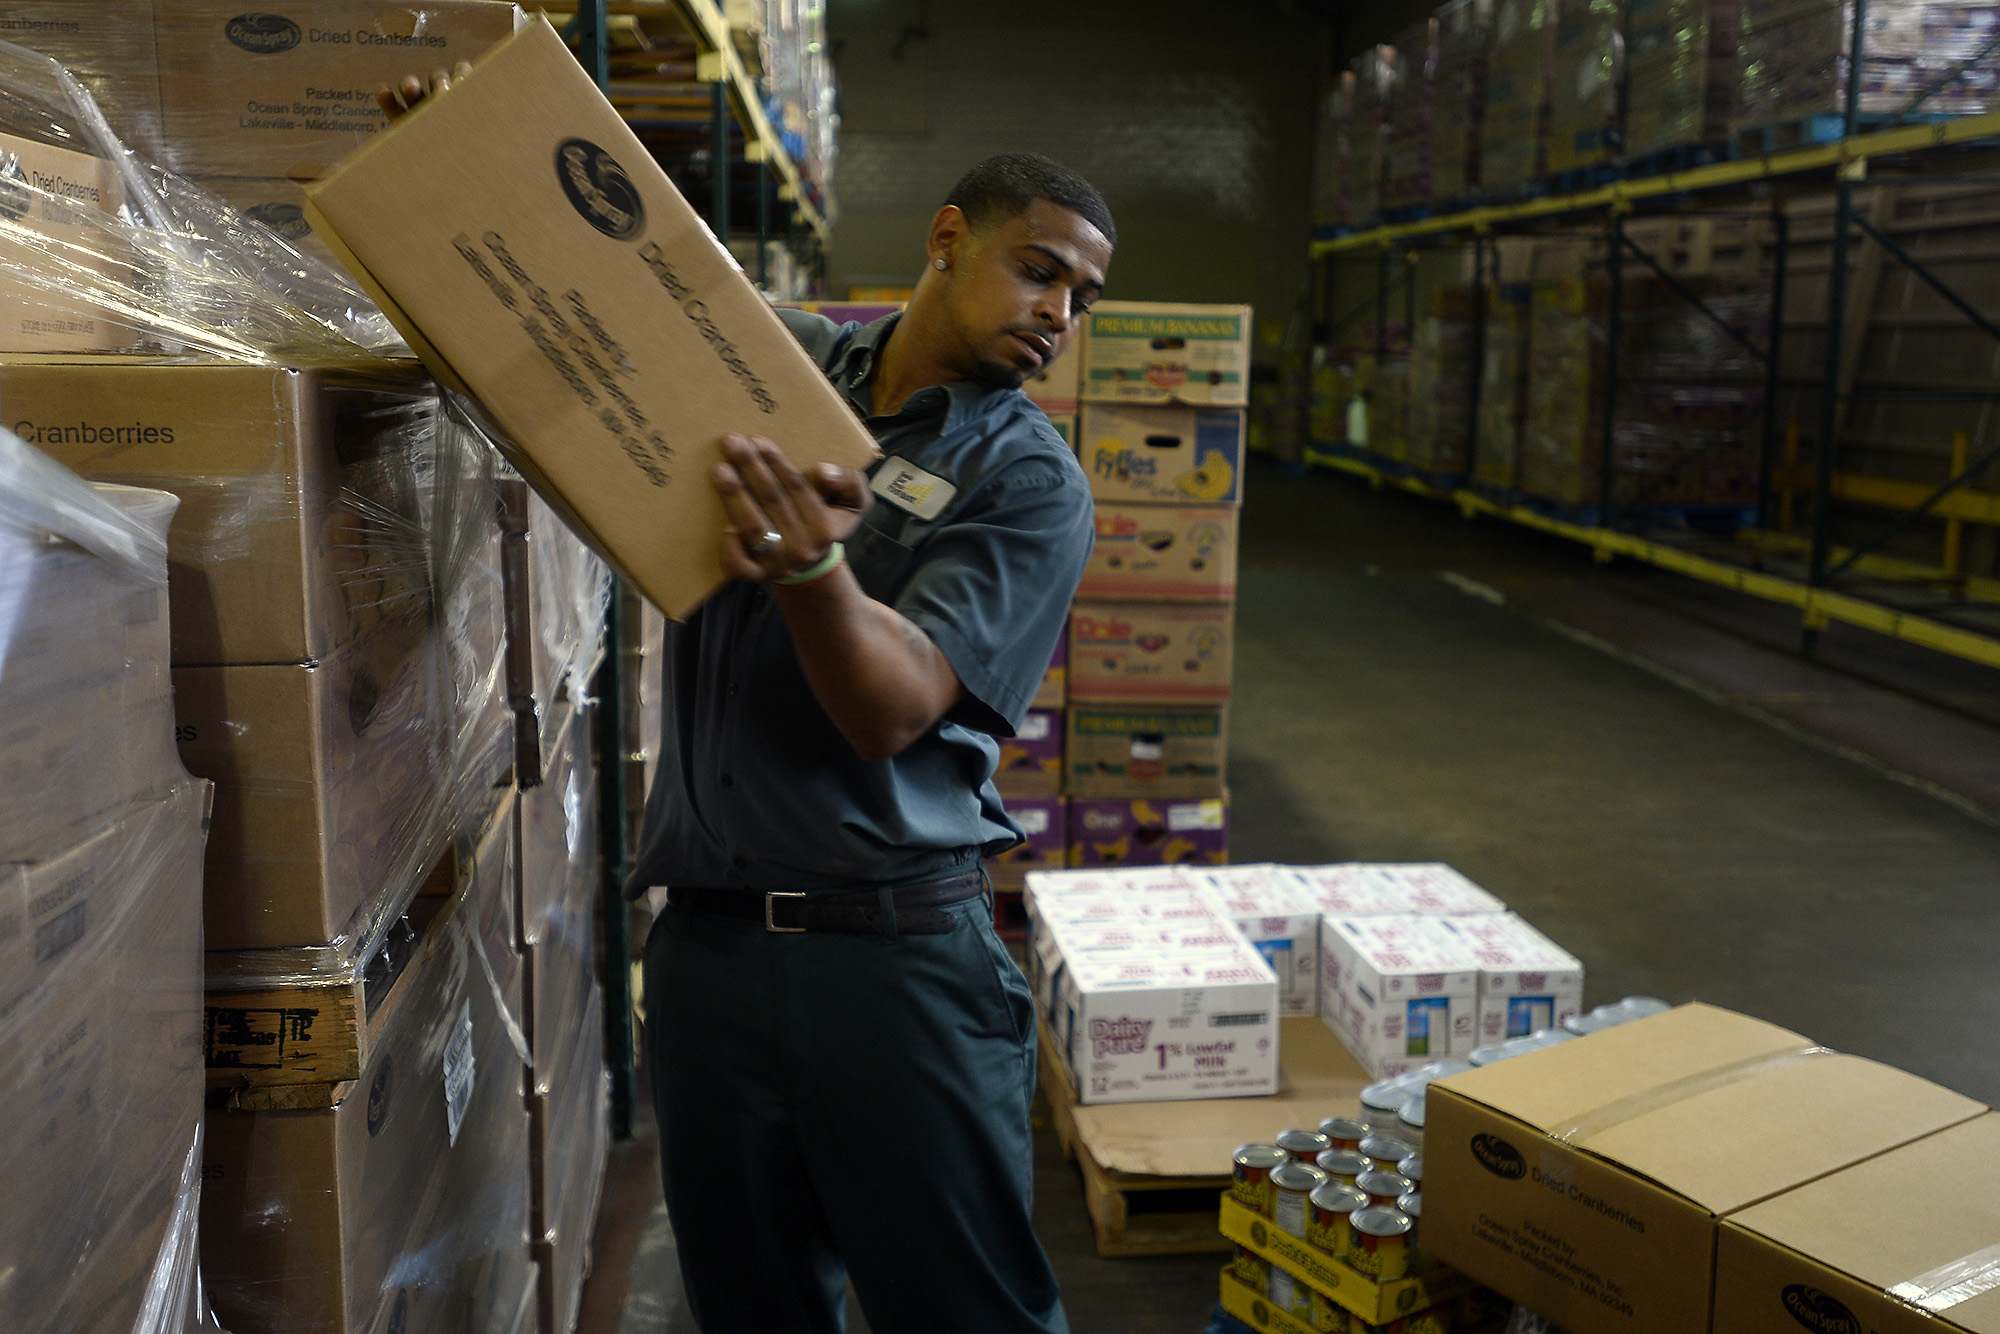 Southeast Texas Food Bank celebrates 25 years of service